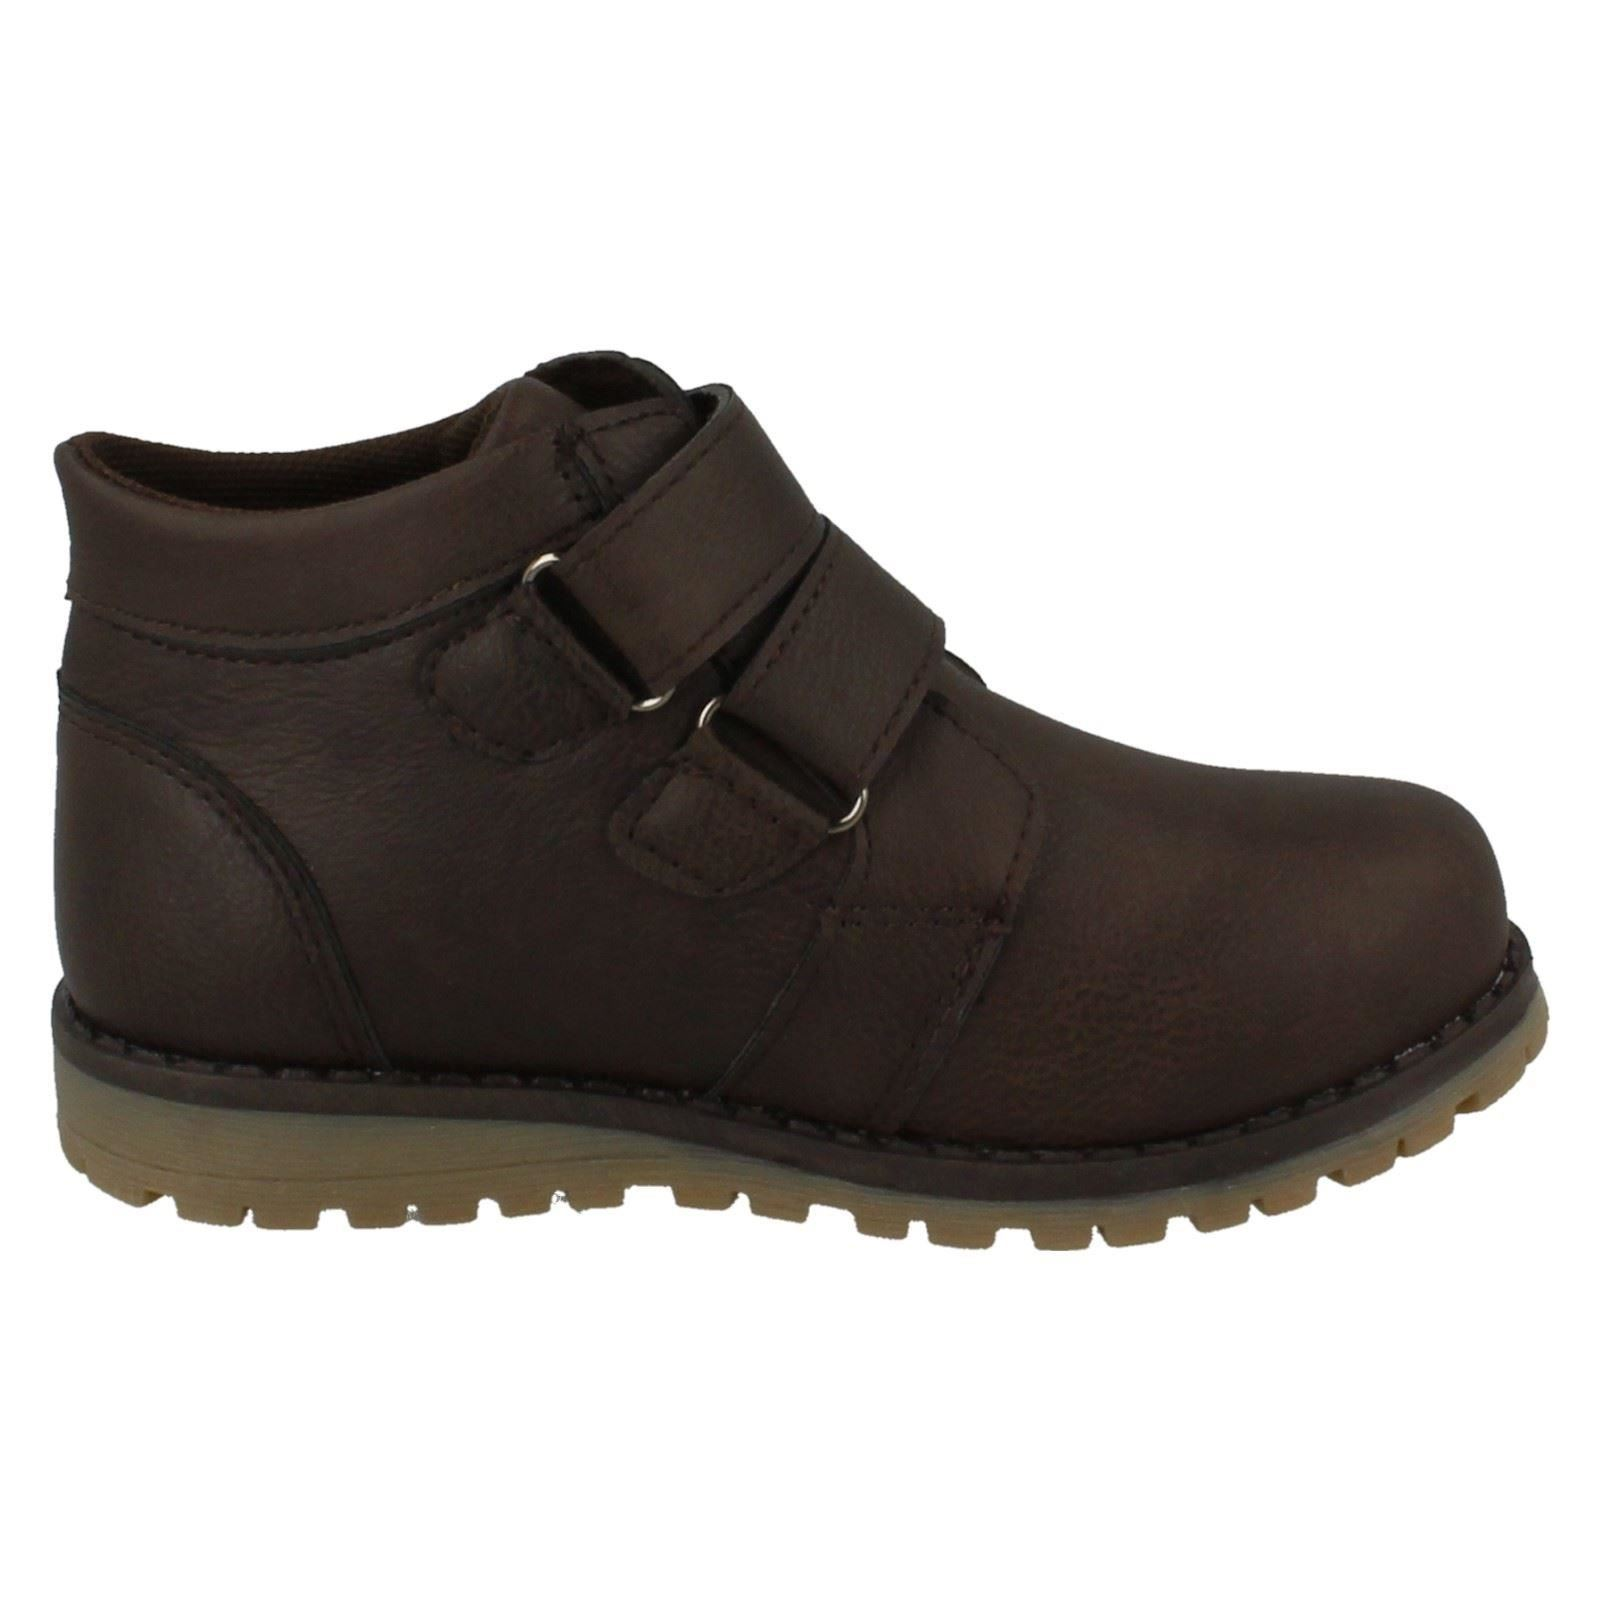 Boys JCDees Double Strap Ankle Boots